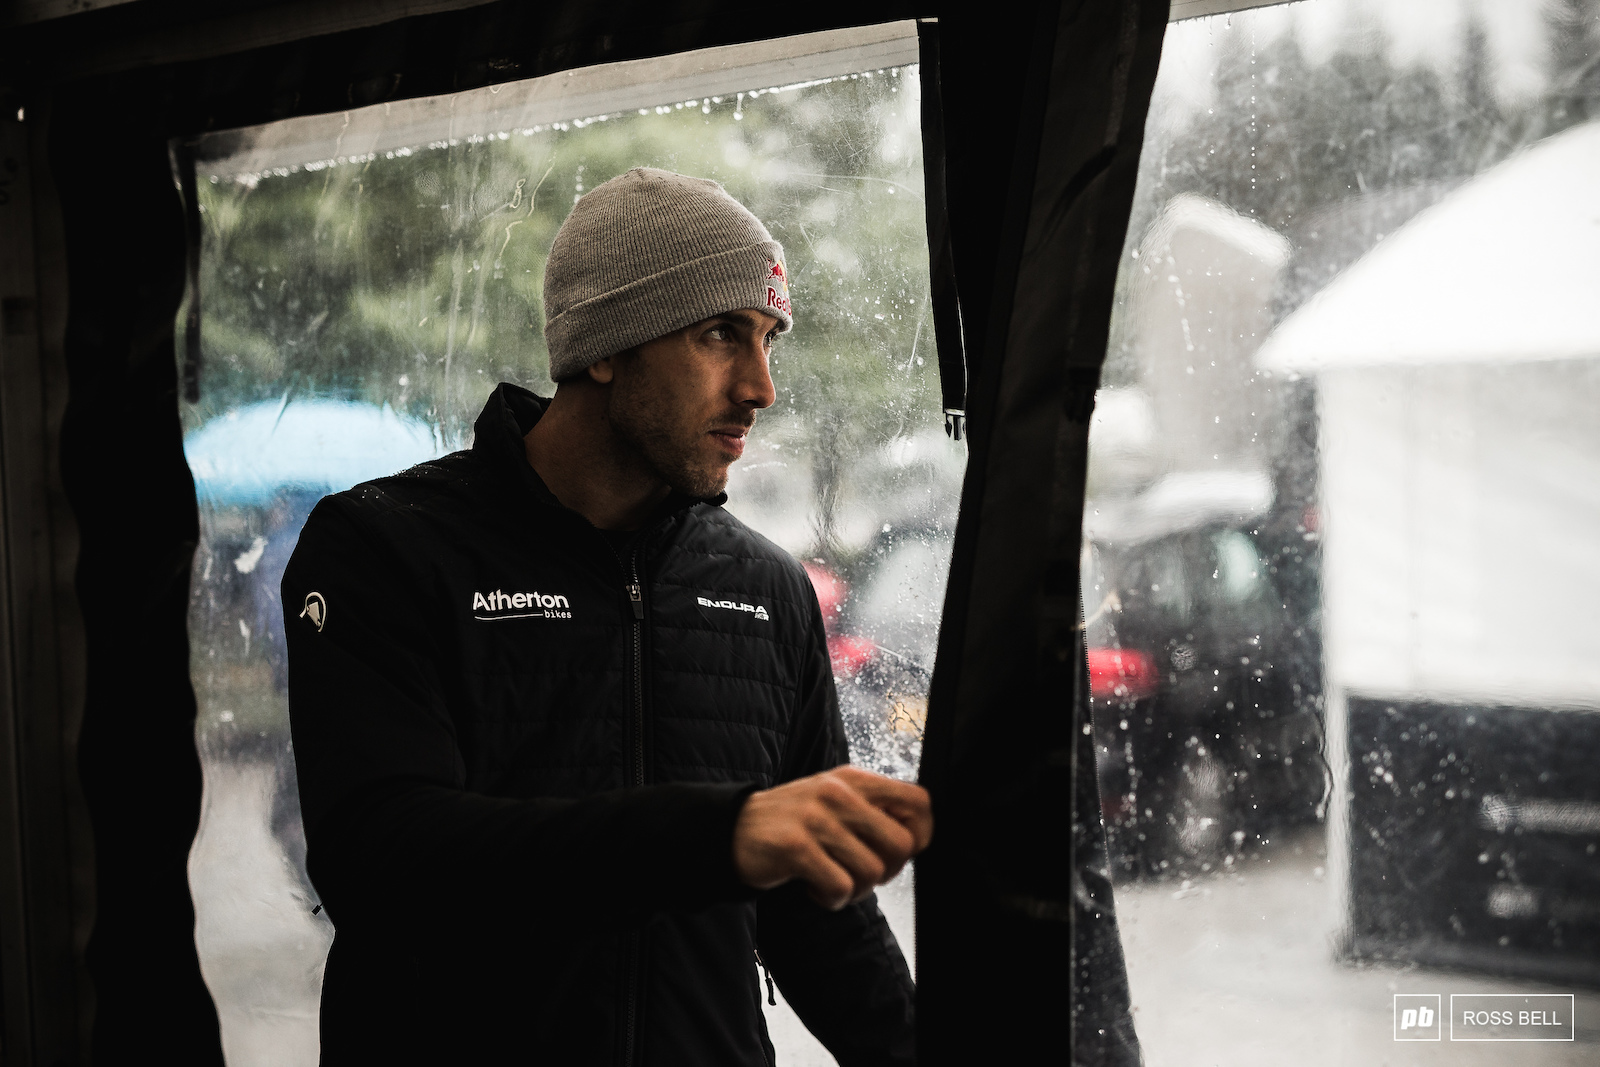 Gee Atherton checking for a break in the weather.